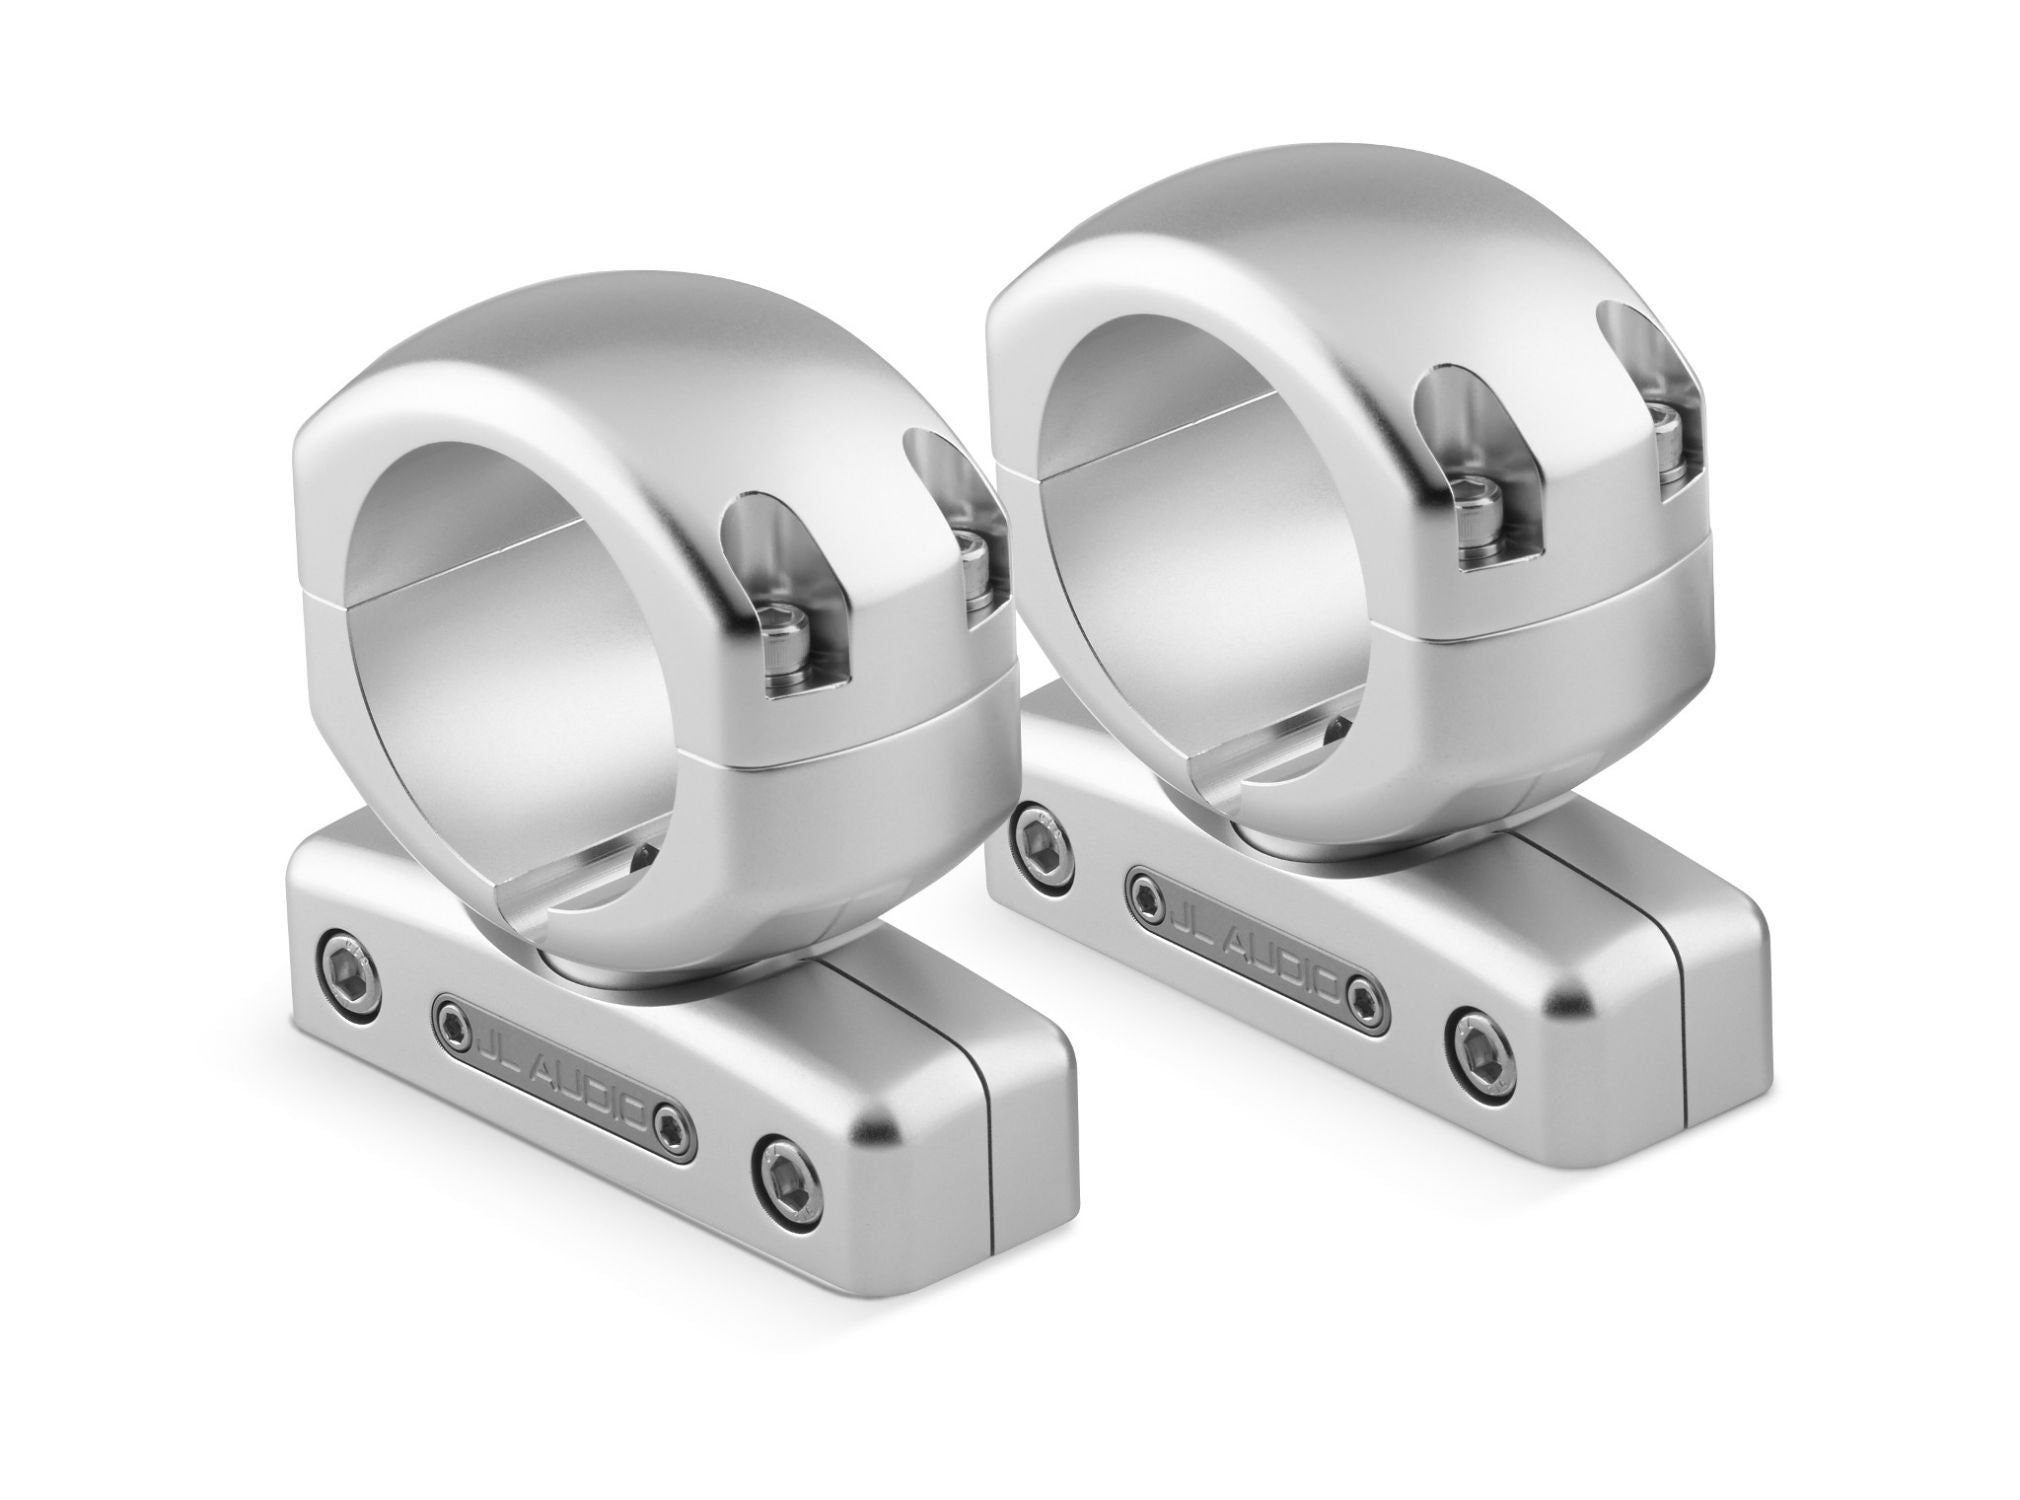 M-SWMCPv3-2-500 Swivel Mounting Clamp Pair